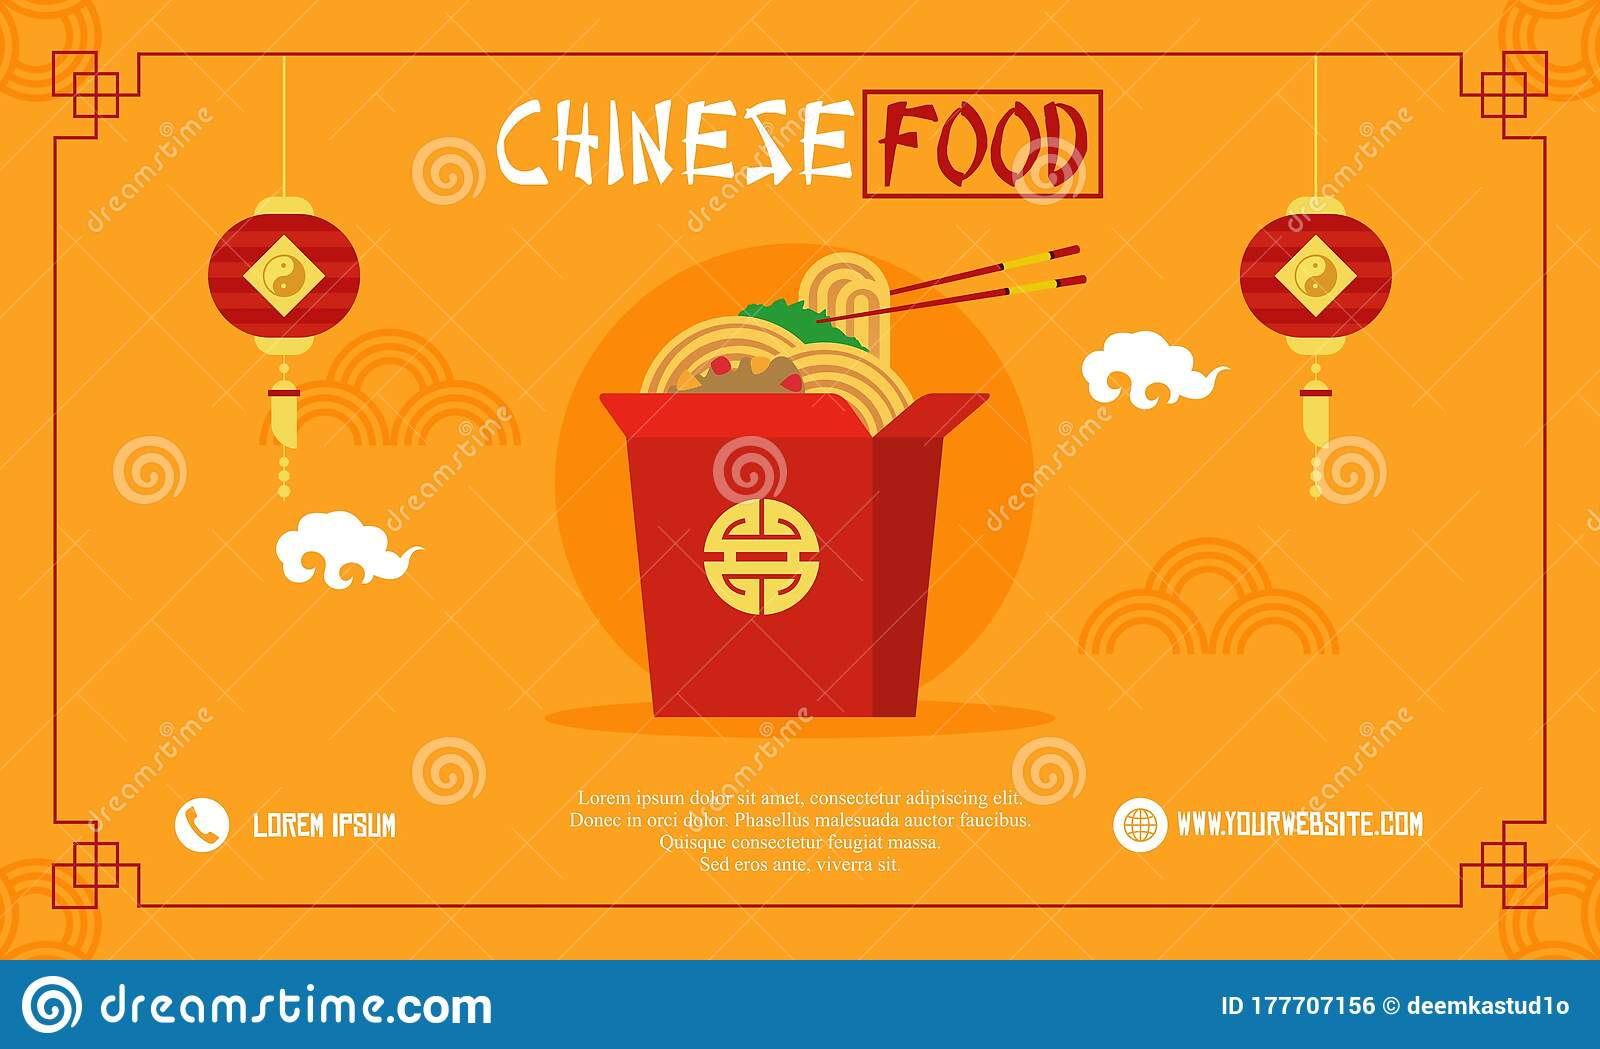 Chinese Food Flyer Logo Template Menu Restaurant Chinese Vector Editorial Photo Illustration Of Containsnjpg China 177707156